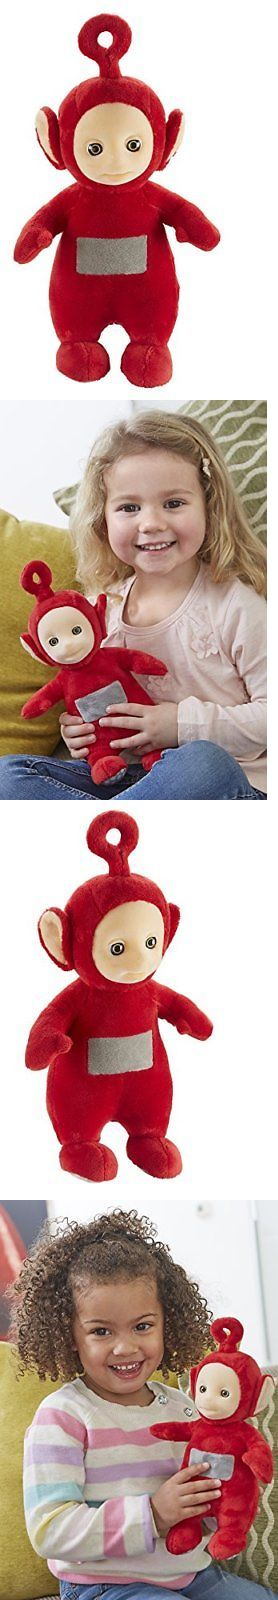 Teletubbies 756: Teletubbies Talking Po Soft Toy Red -> BUY IT NOW ONLY: $30.2 on eBay!